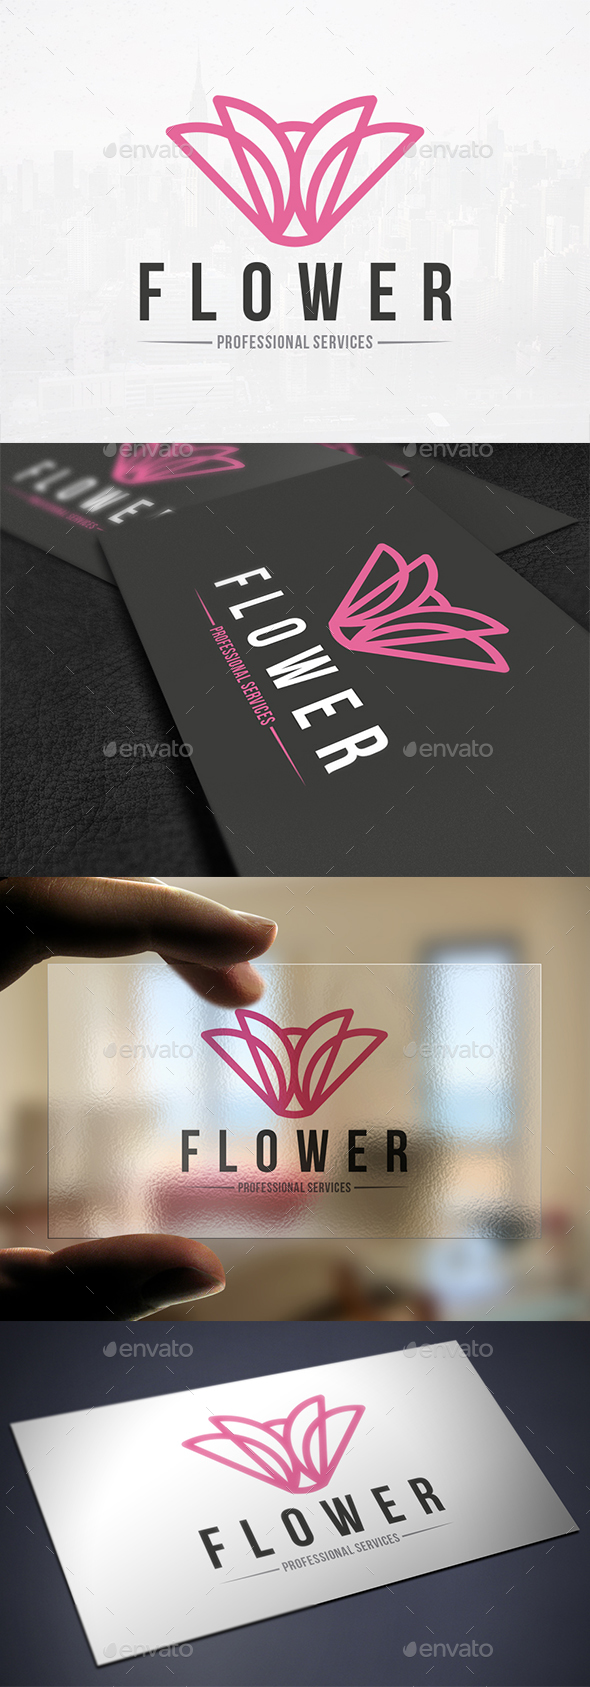 Pink Flower Logo Template - Nature Logo Templates